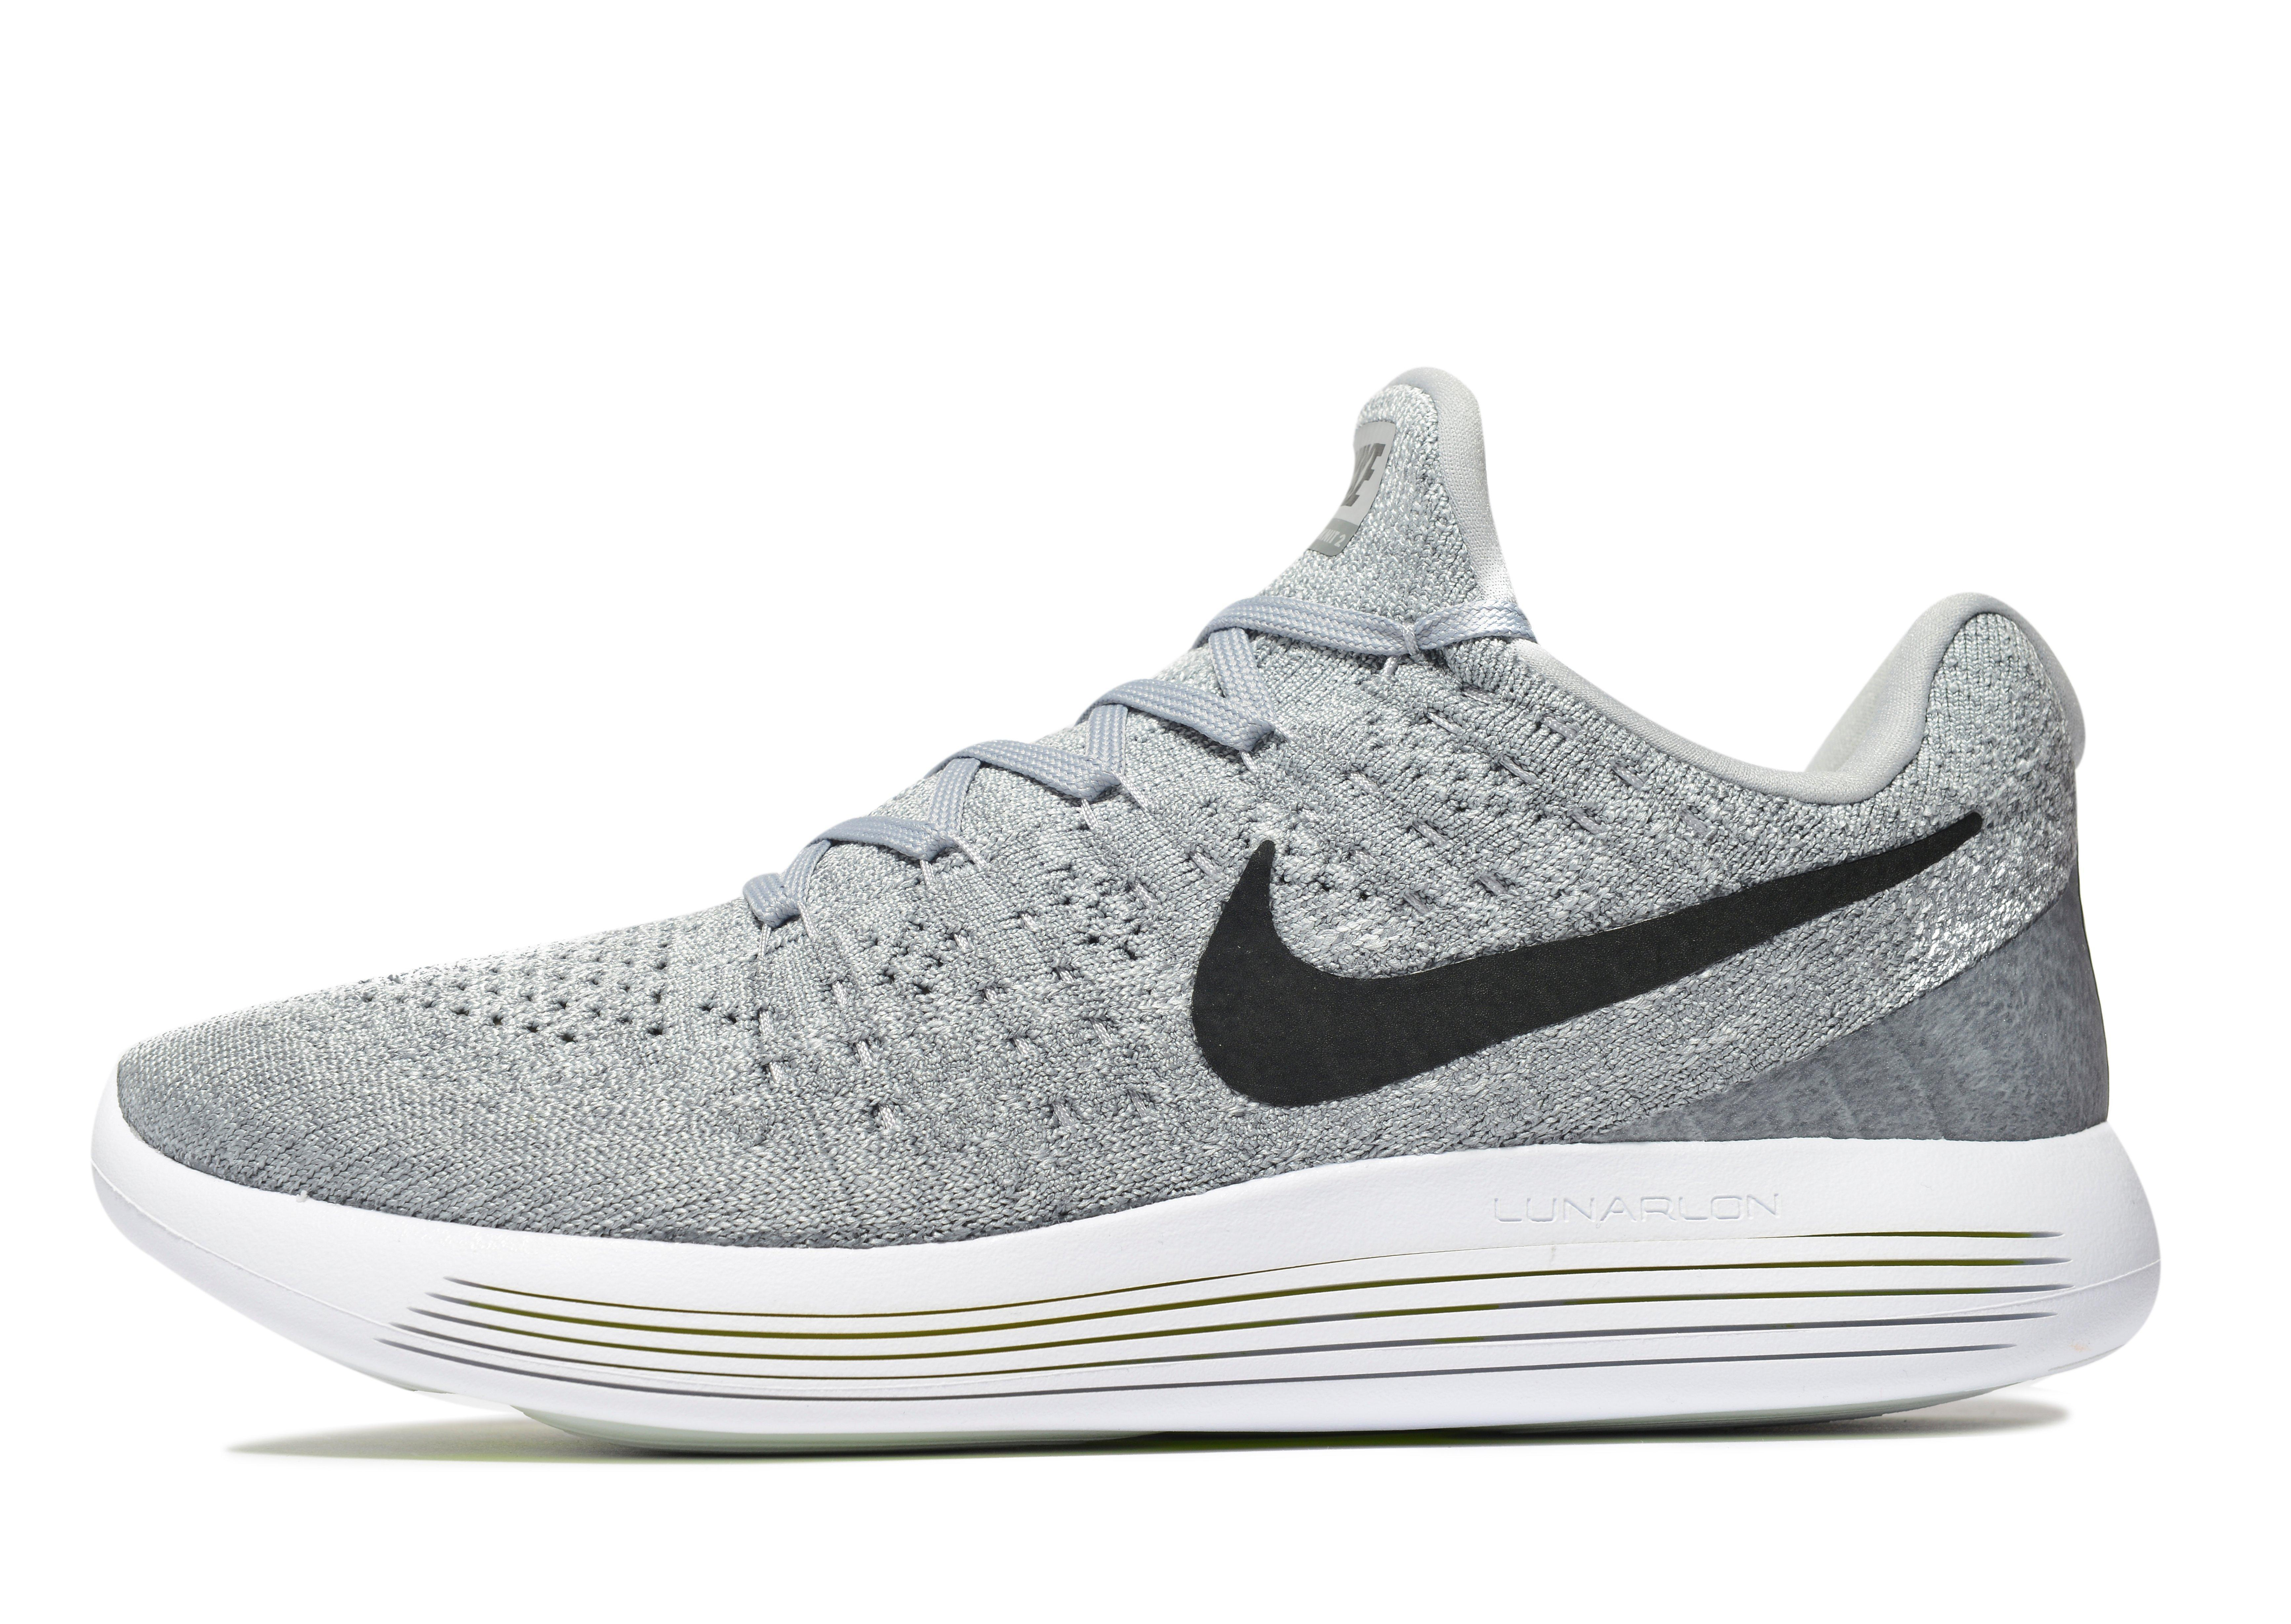 quality design 3a85e bfcfc Gallery. Previously sold at  JD Sports · Women s Nike Flyknit Women s Nike  Lunartempo 2 ...